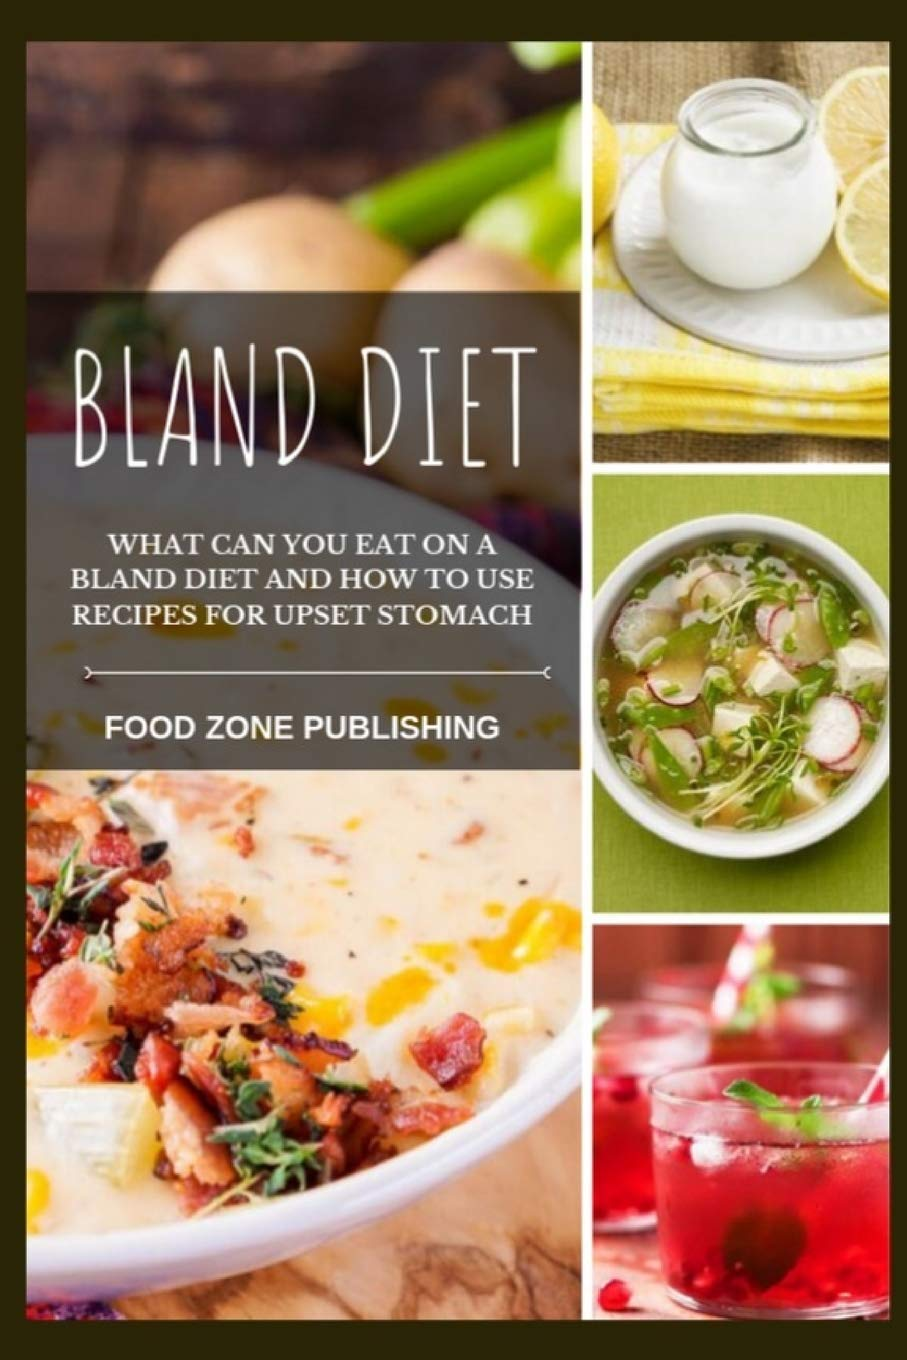 what does a bland diet cosist of